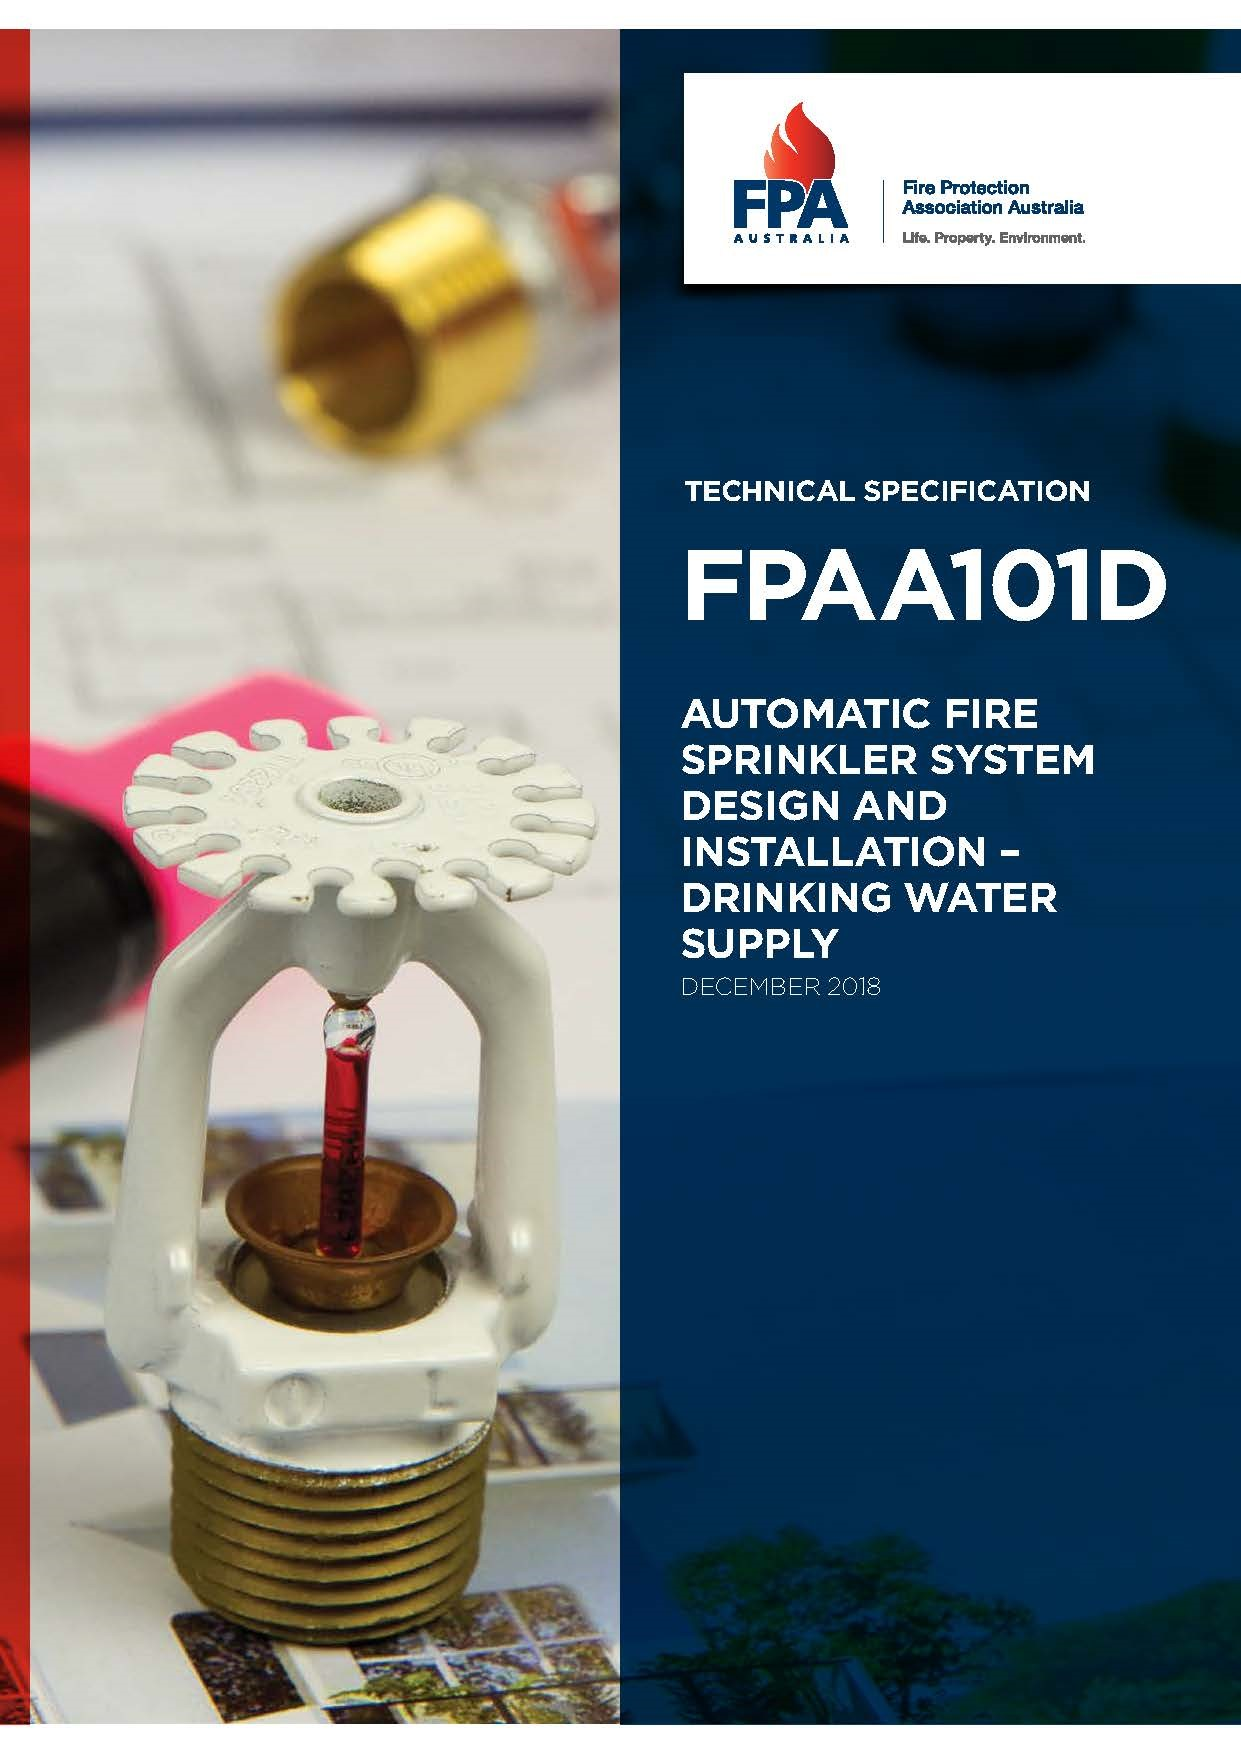 FPAA101D IMAGE